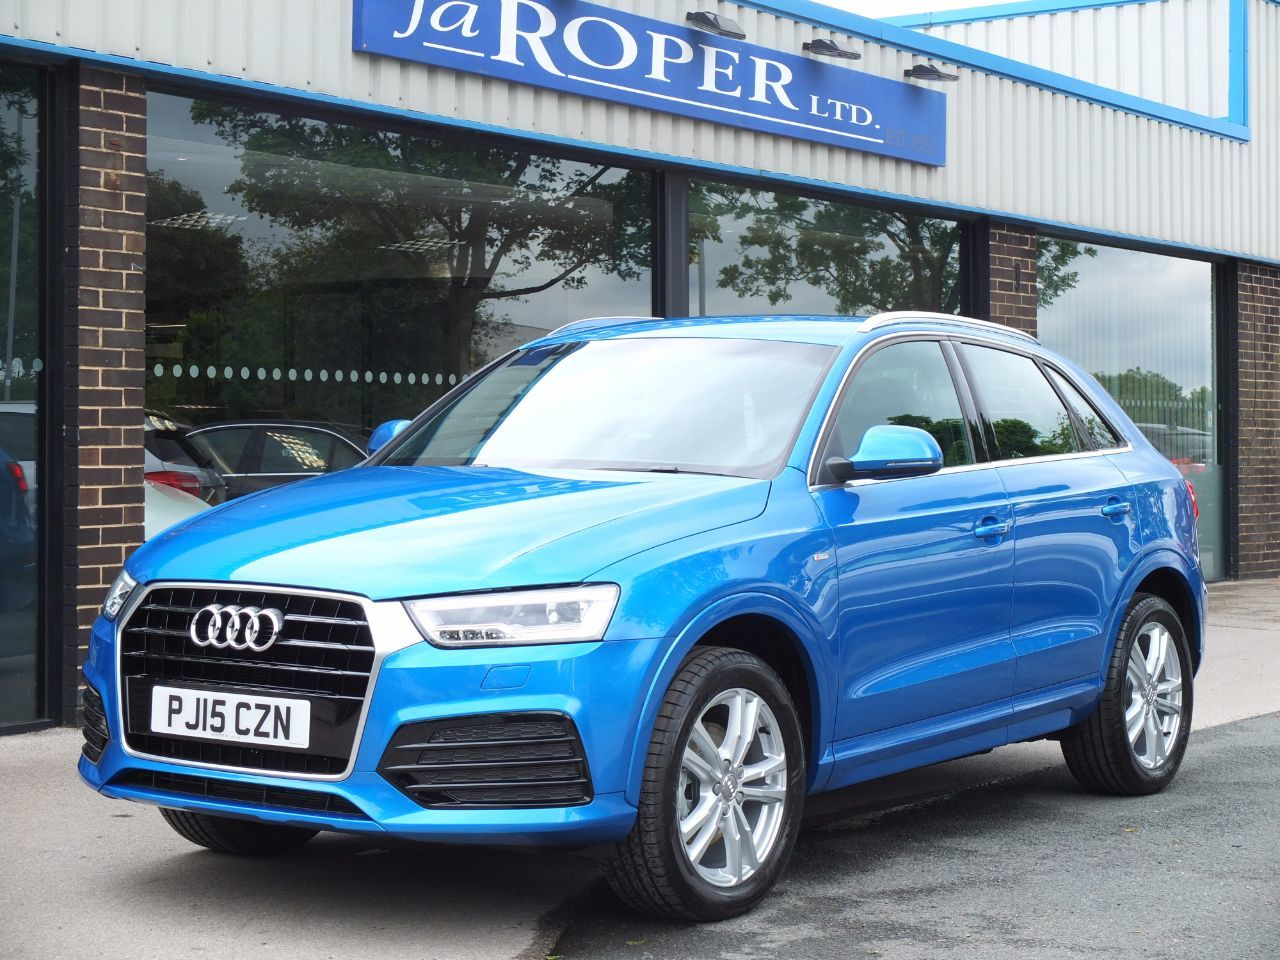 Audi Q3 1.4T FSI S Line Cylinder On Demand S Tronic ++Spec Estate Petrol Hainan Blue MetallicAudi Q3 1.4T FSI S Line Cylinder On Demand S Tronic ++Spec Estate Petrol Hainan Blue Metallic at fa Roper Ltd Bradford